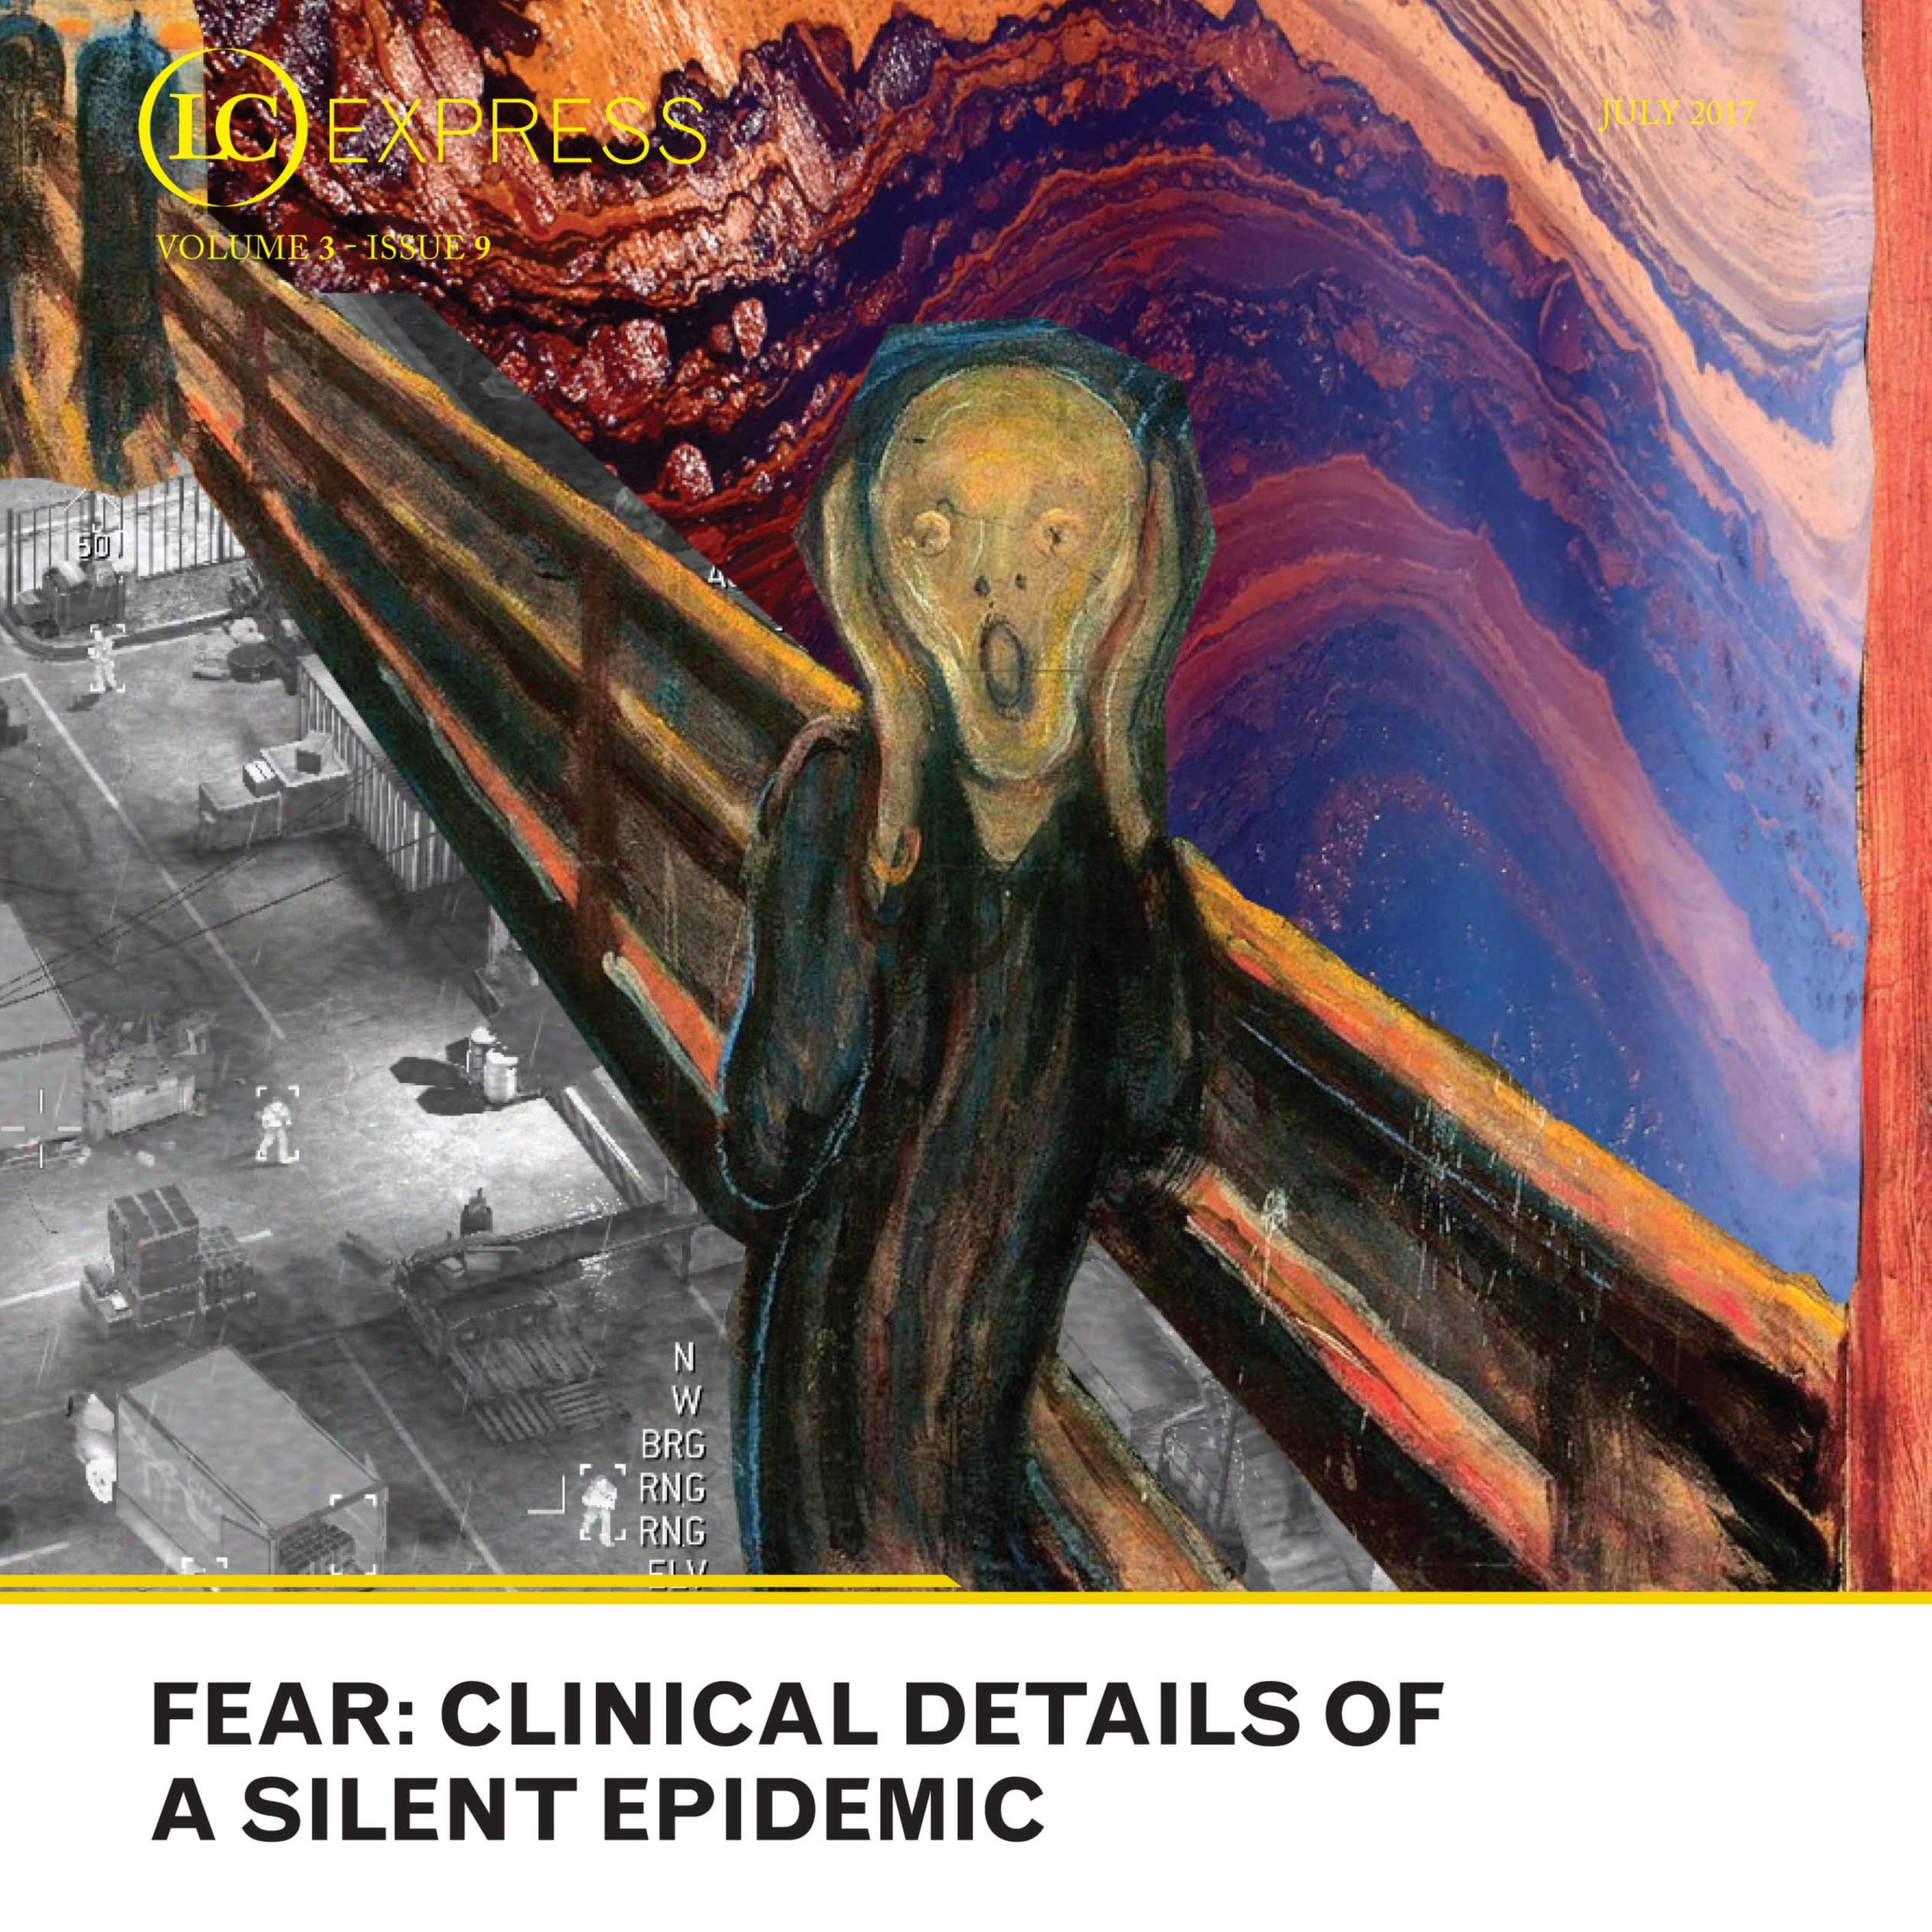 LCExpress Volume 3 / Issue 9  Fear: Clinical Details of a Silent Epidemic   Jorge Assef